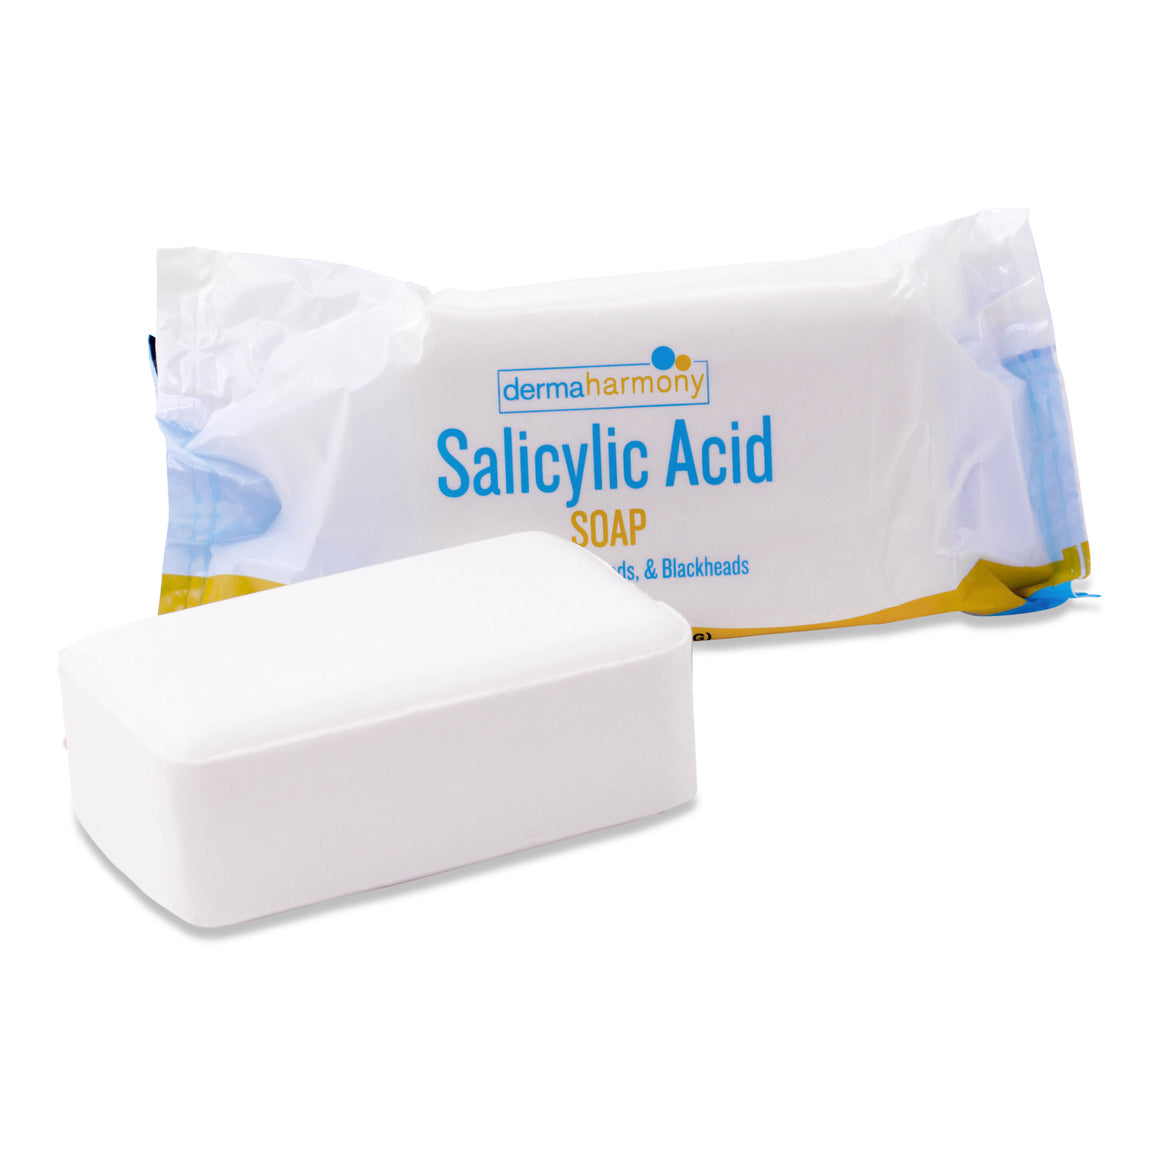 2% Salicylic Acid Body and Facial Soap